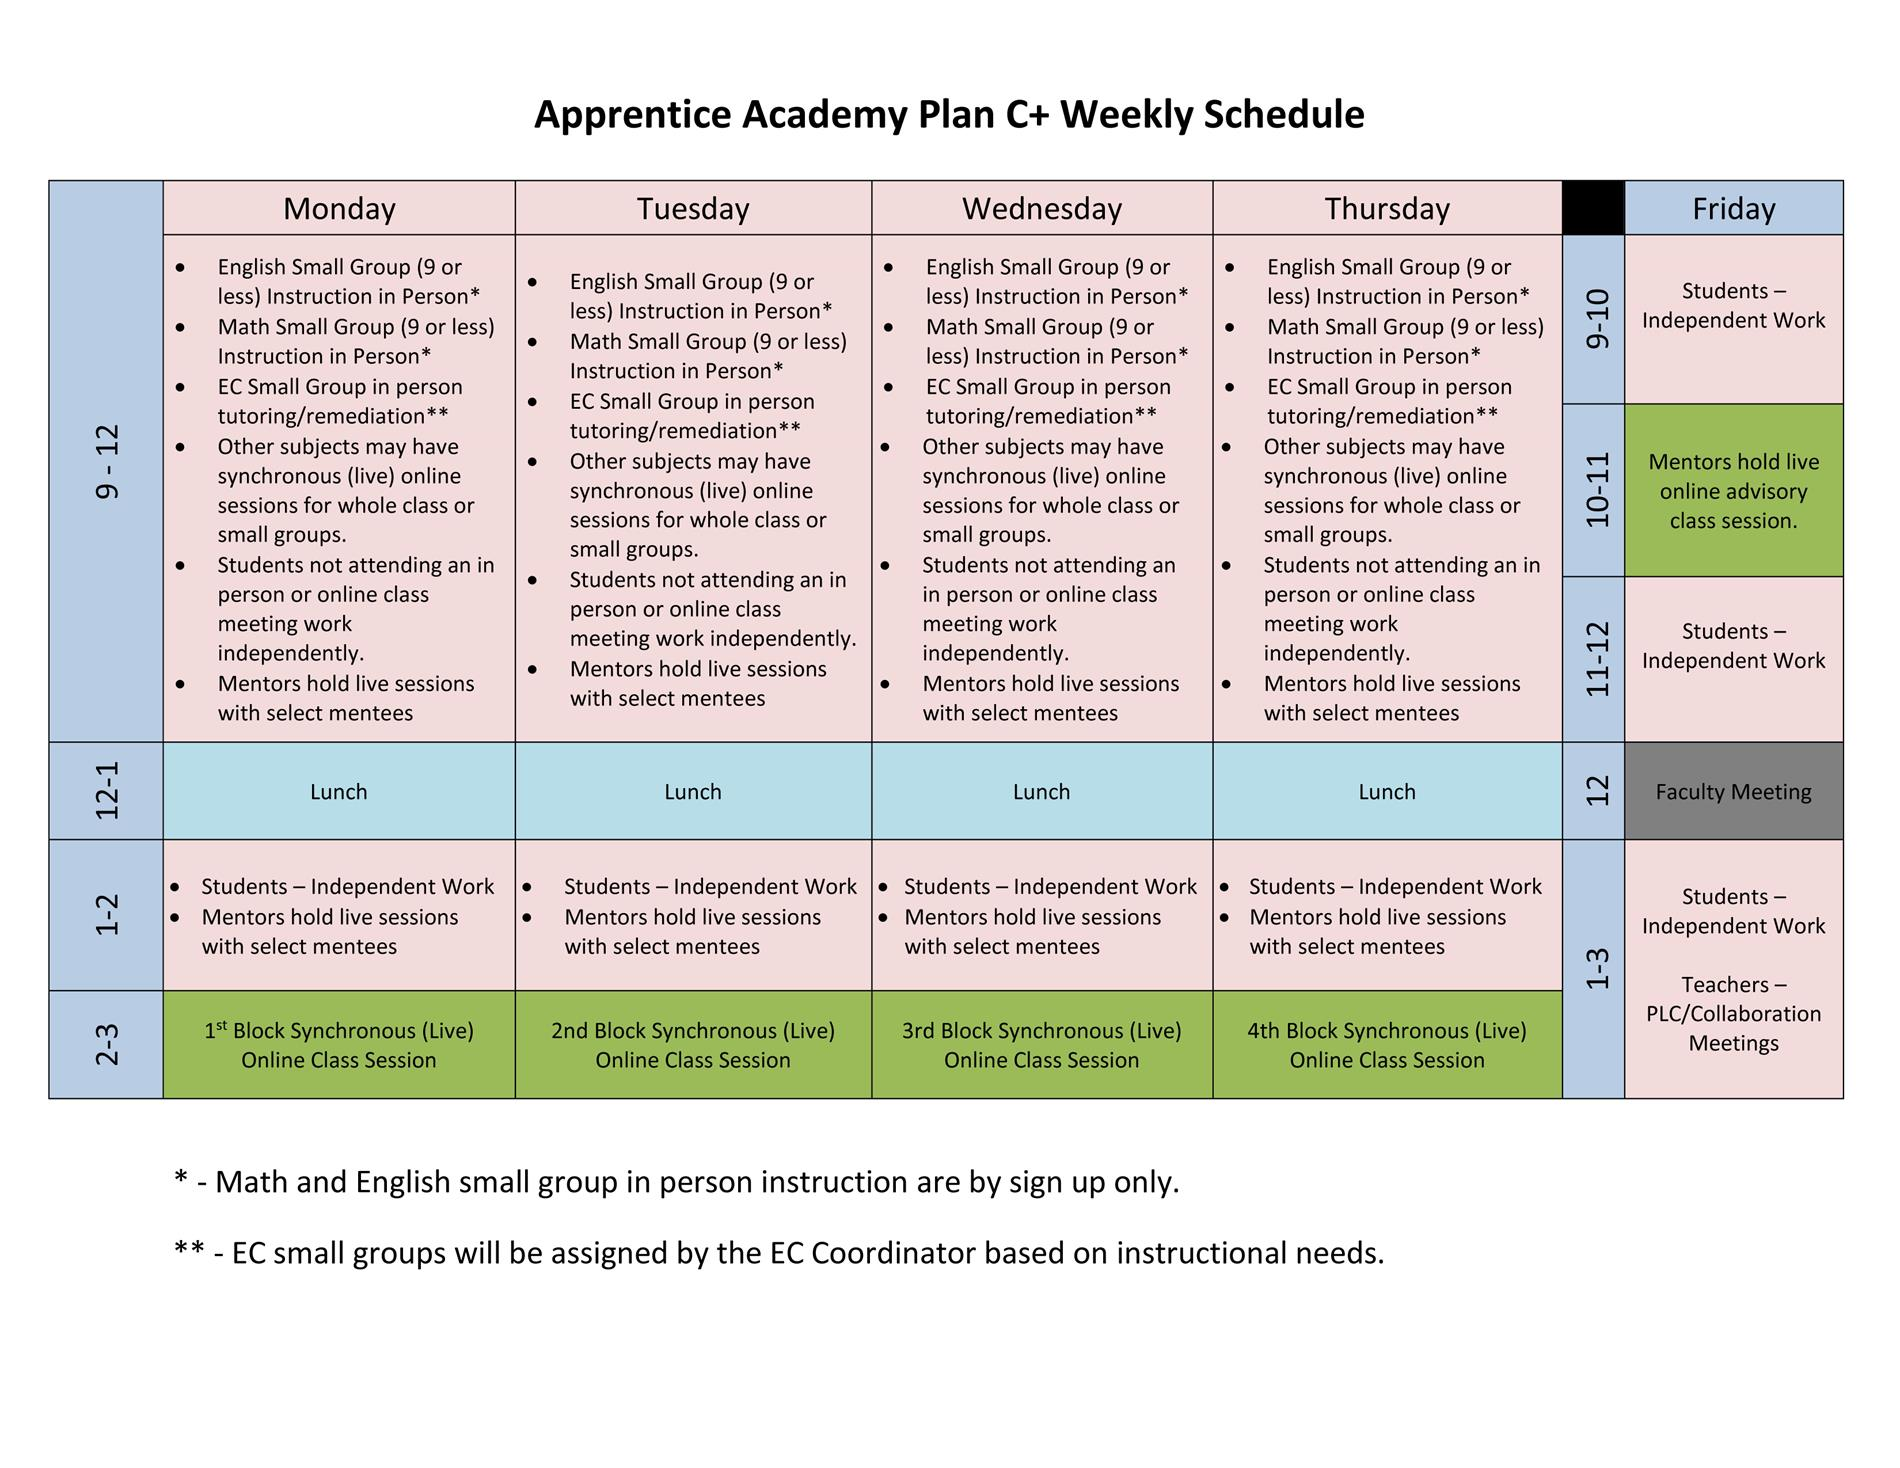 daily instructional grid for Option C